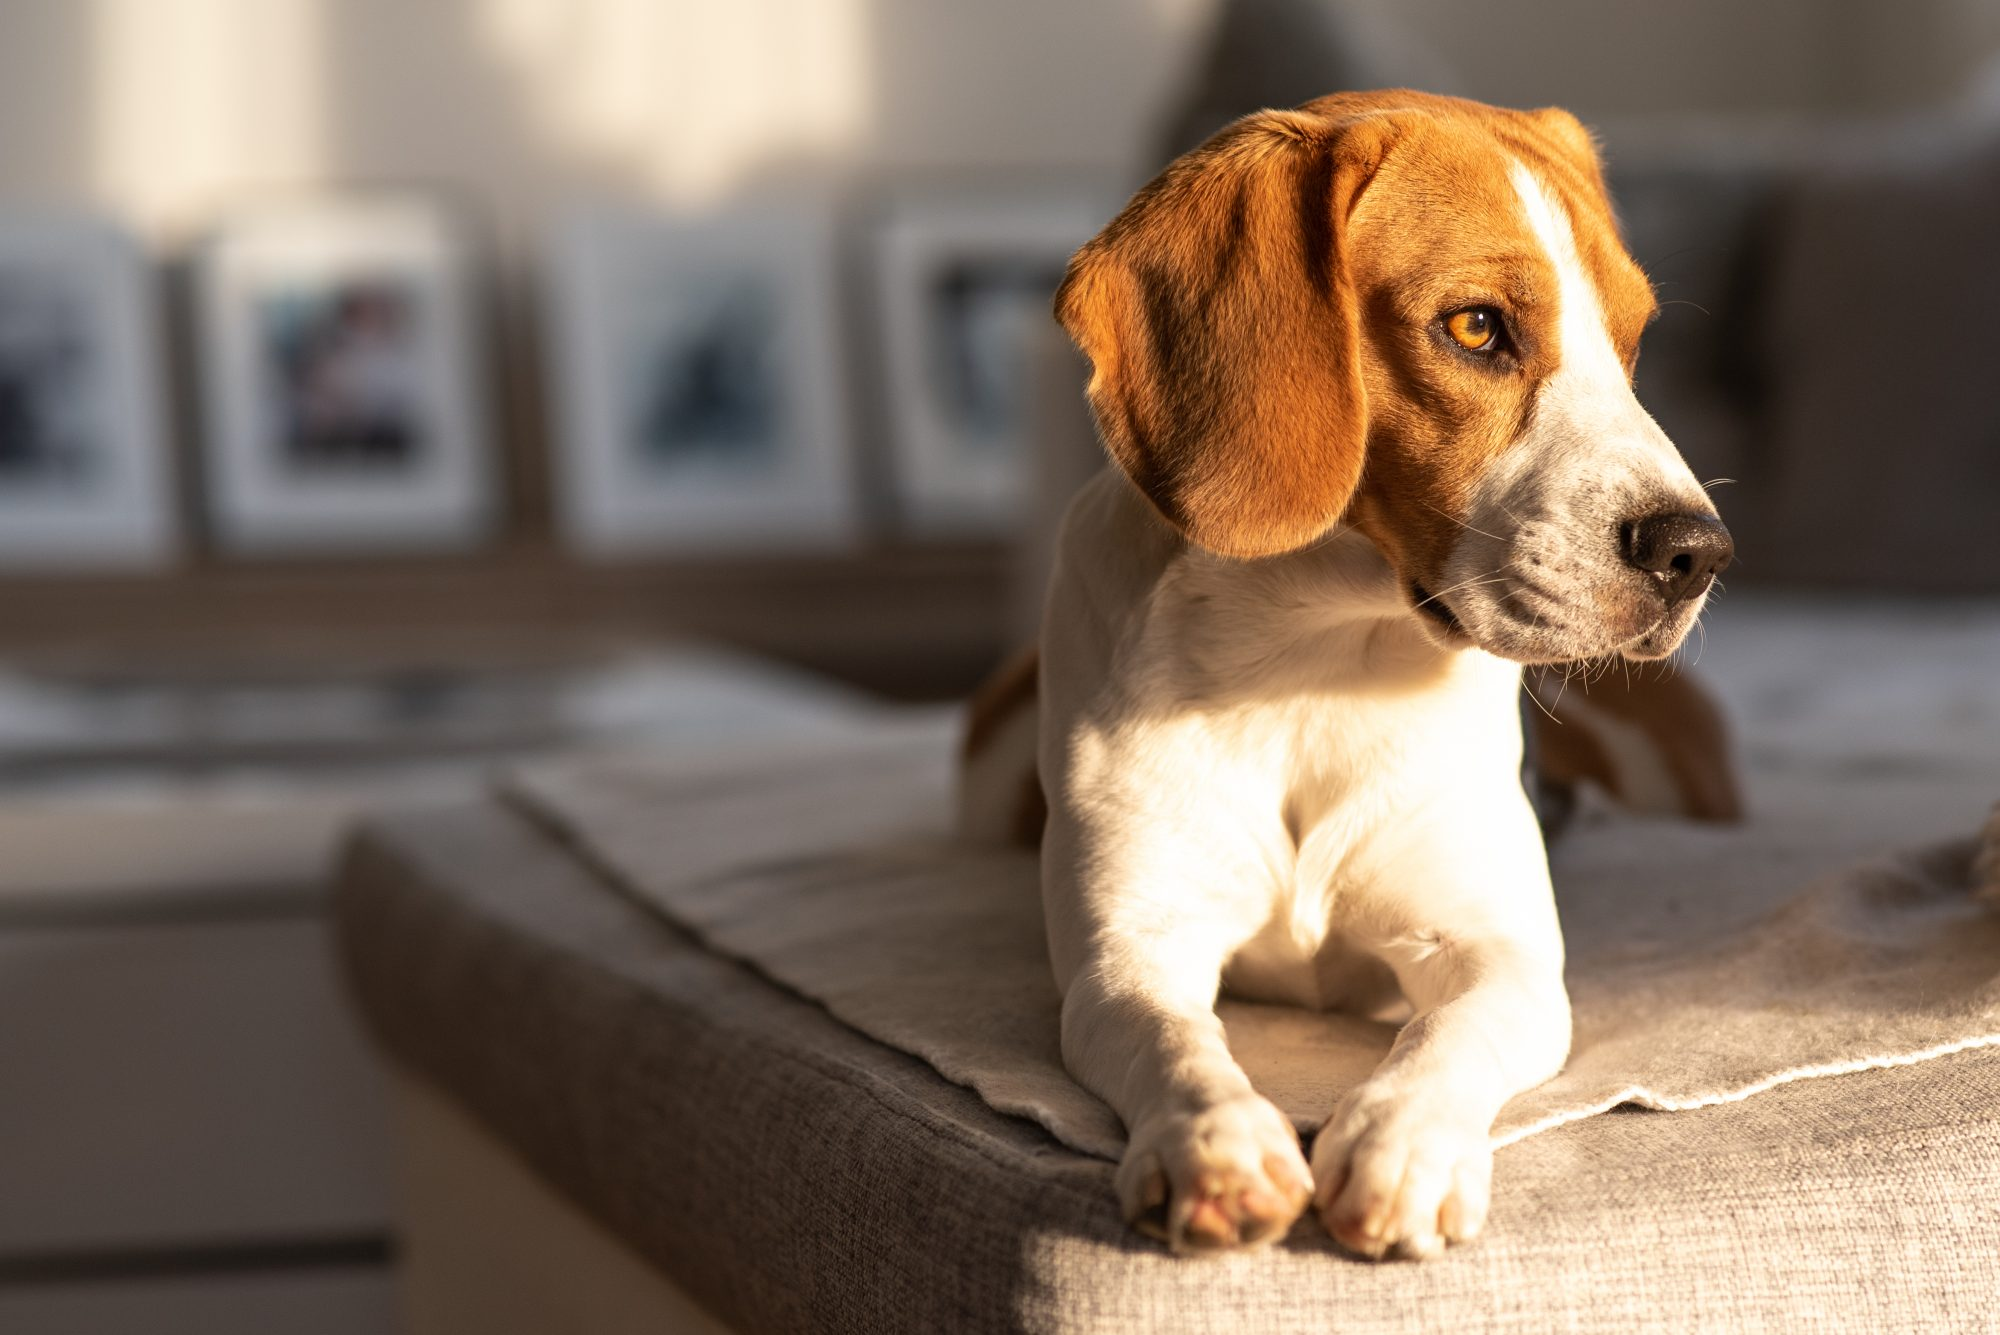 Close-Up Of Dog Looking Away While Lying On Sofa At Home